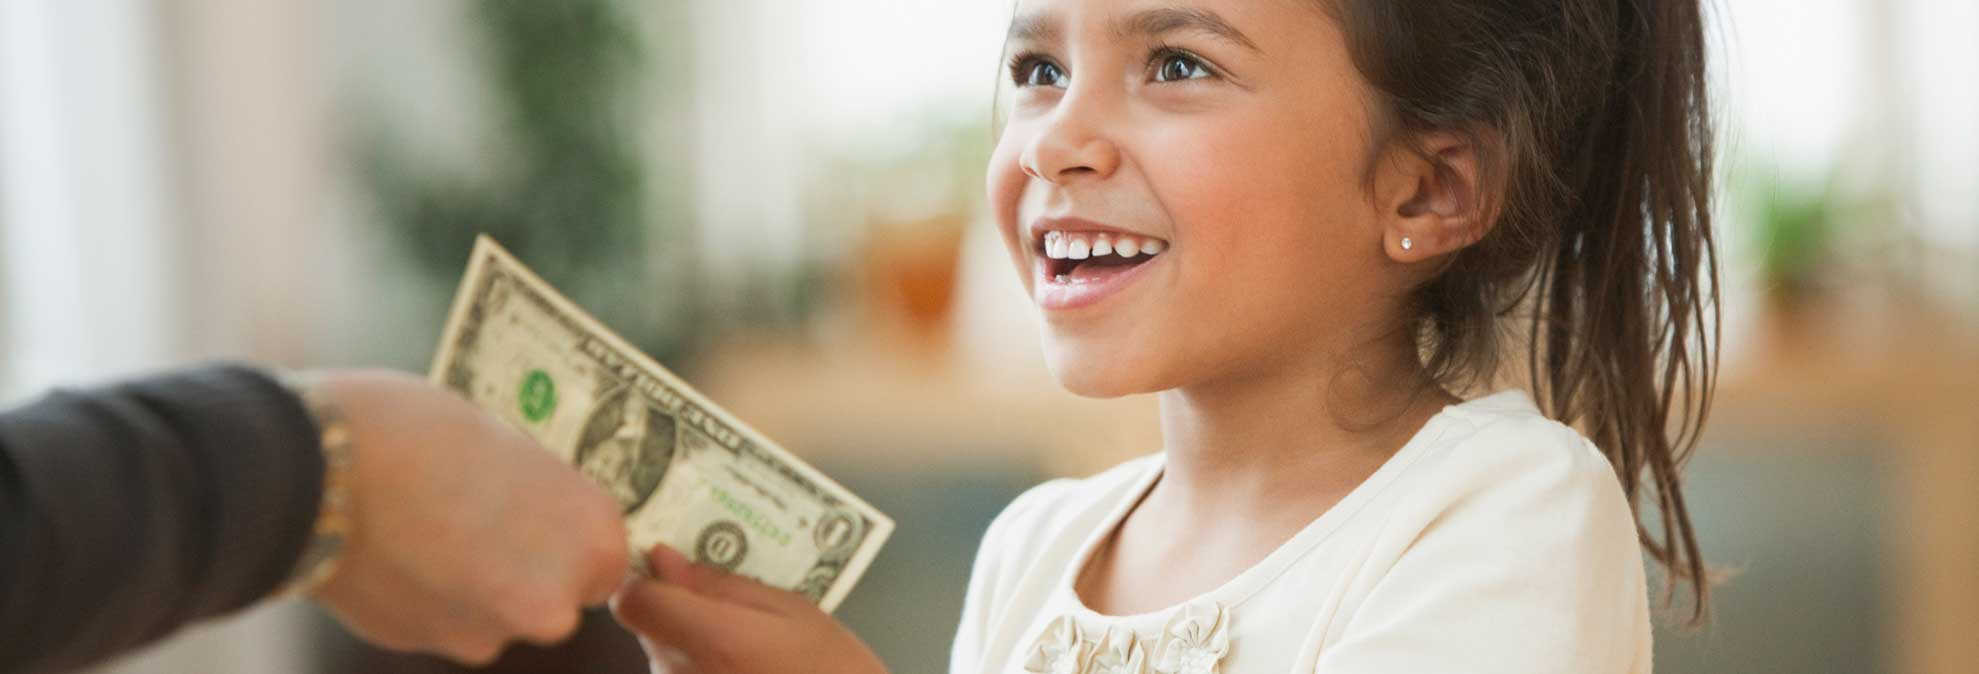 The Right Way to Give your Kid an Allowance